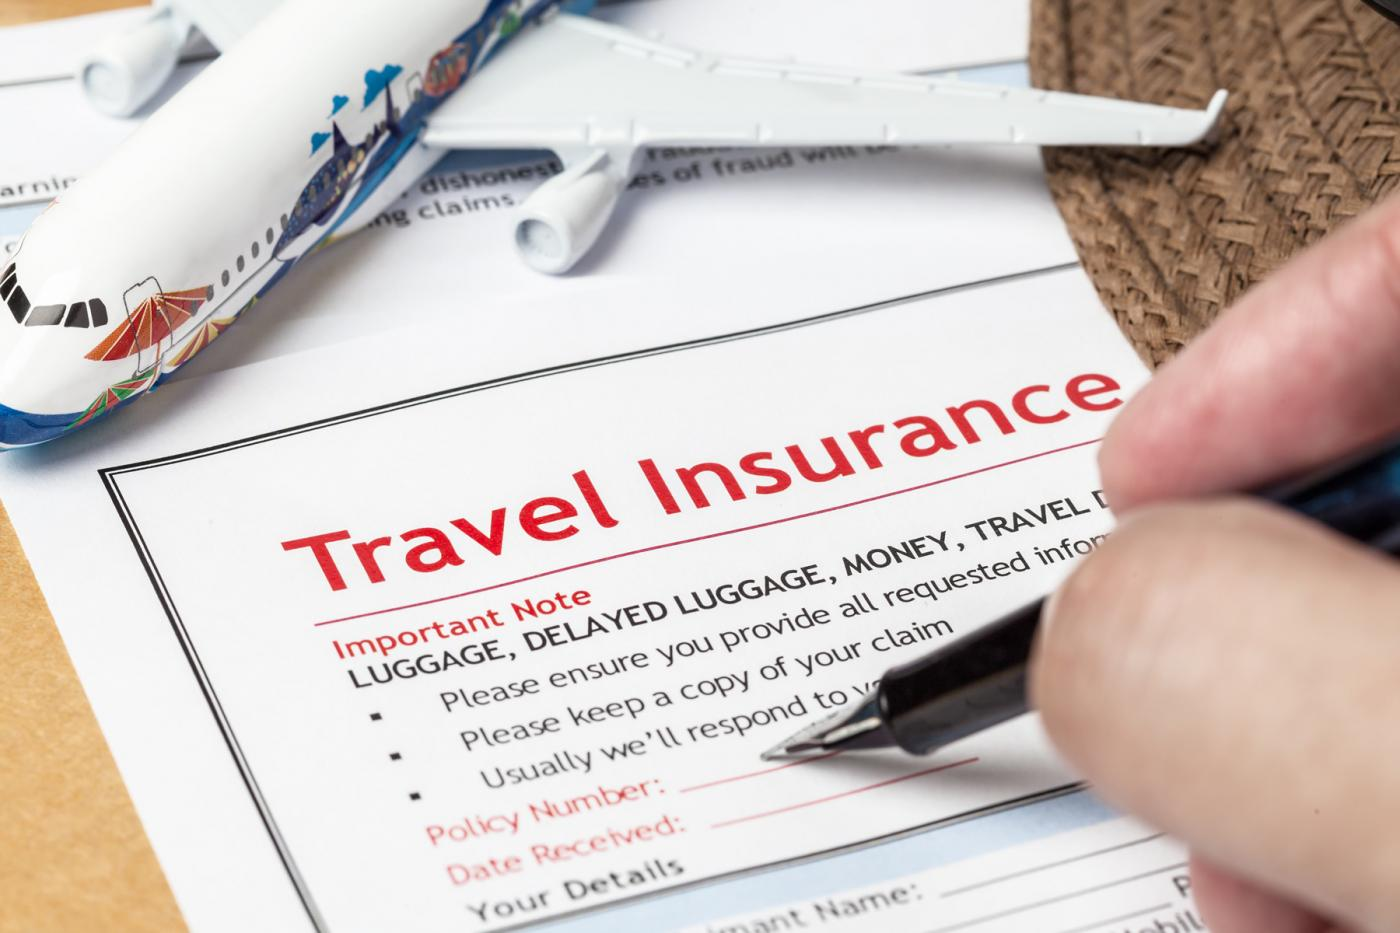 Travel Insurance: Why Travel Insurance is Important? - Buy Now